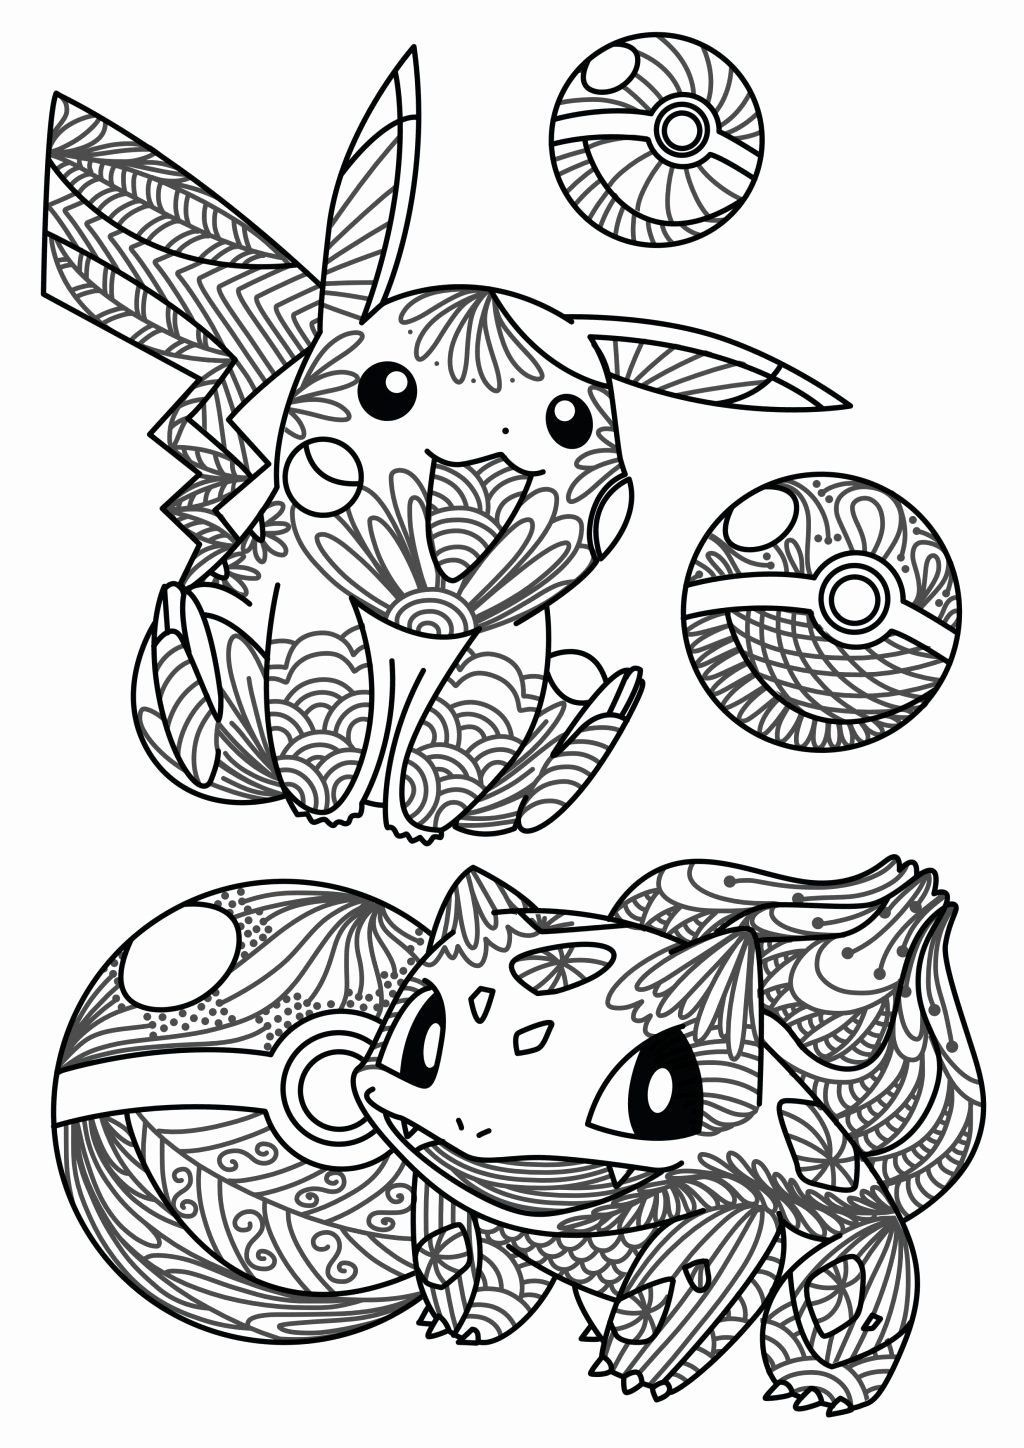 Alphabet Coloring Book Imprimable Best Of Coloring Pages Christmas Coloring Books Coloriage Chat Coloriage Pokemon Coloriage Coloriage Mandala